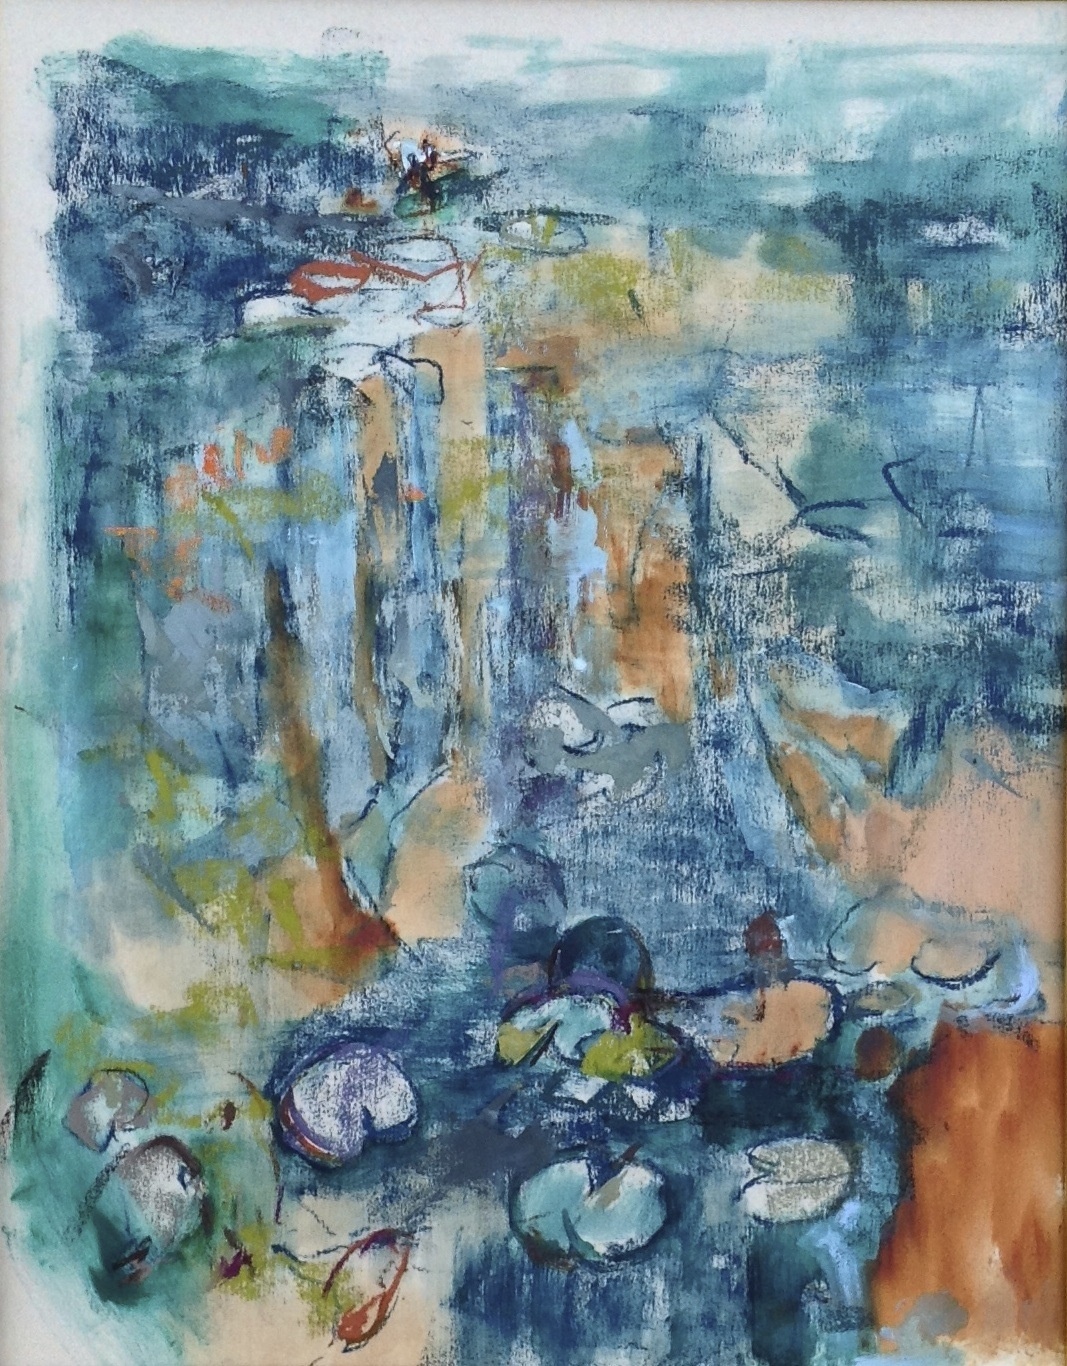 """Marcia Holmes, """"Pond Impression,"""" 2014, pastel, 14 x 11 in. Sold. Painted en plein air, Giverny, France."""